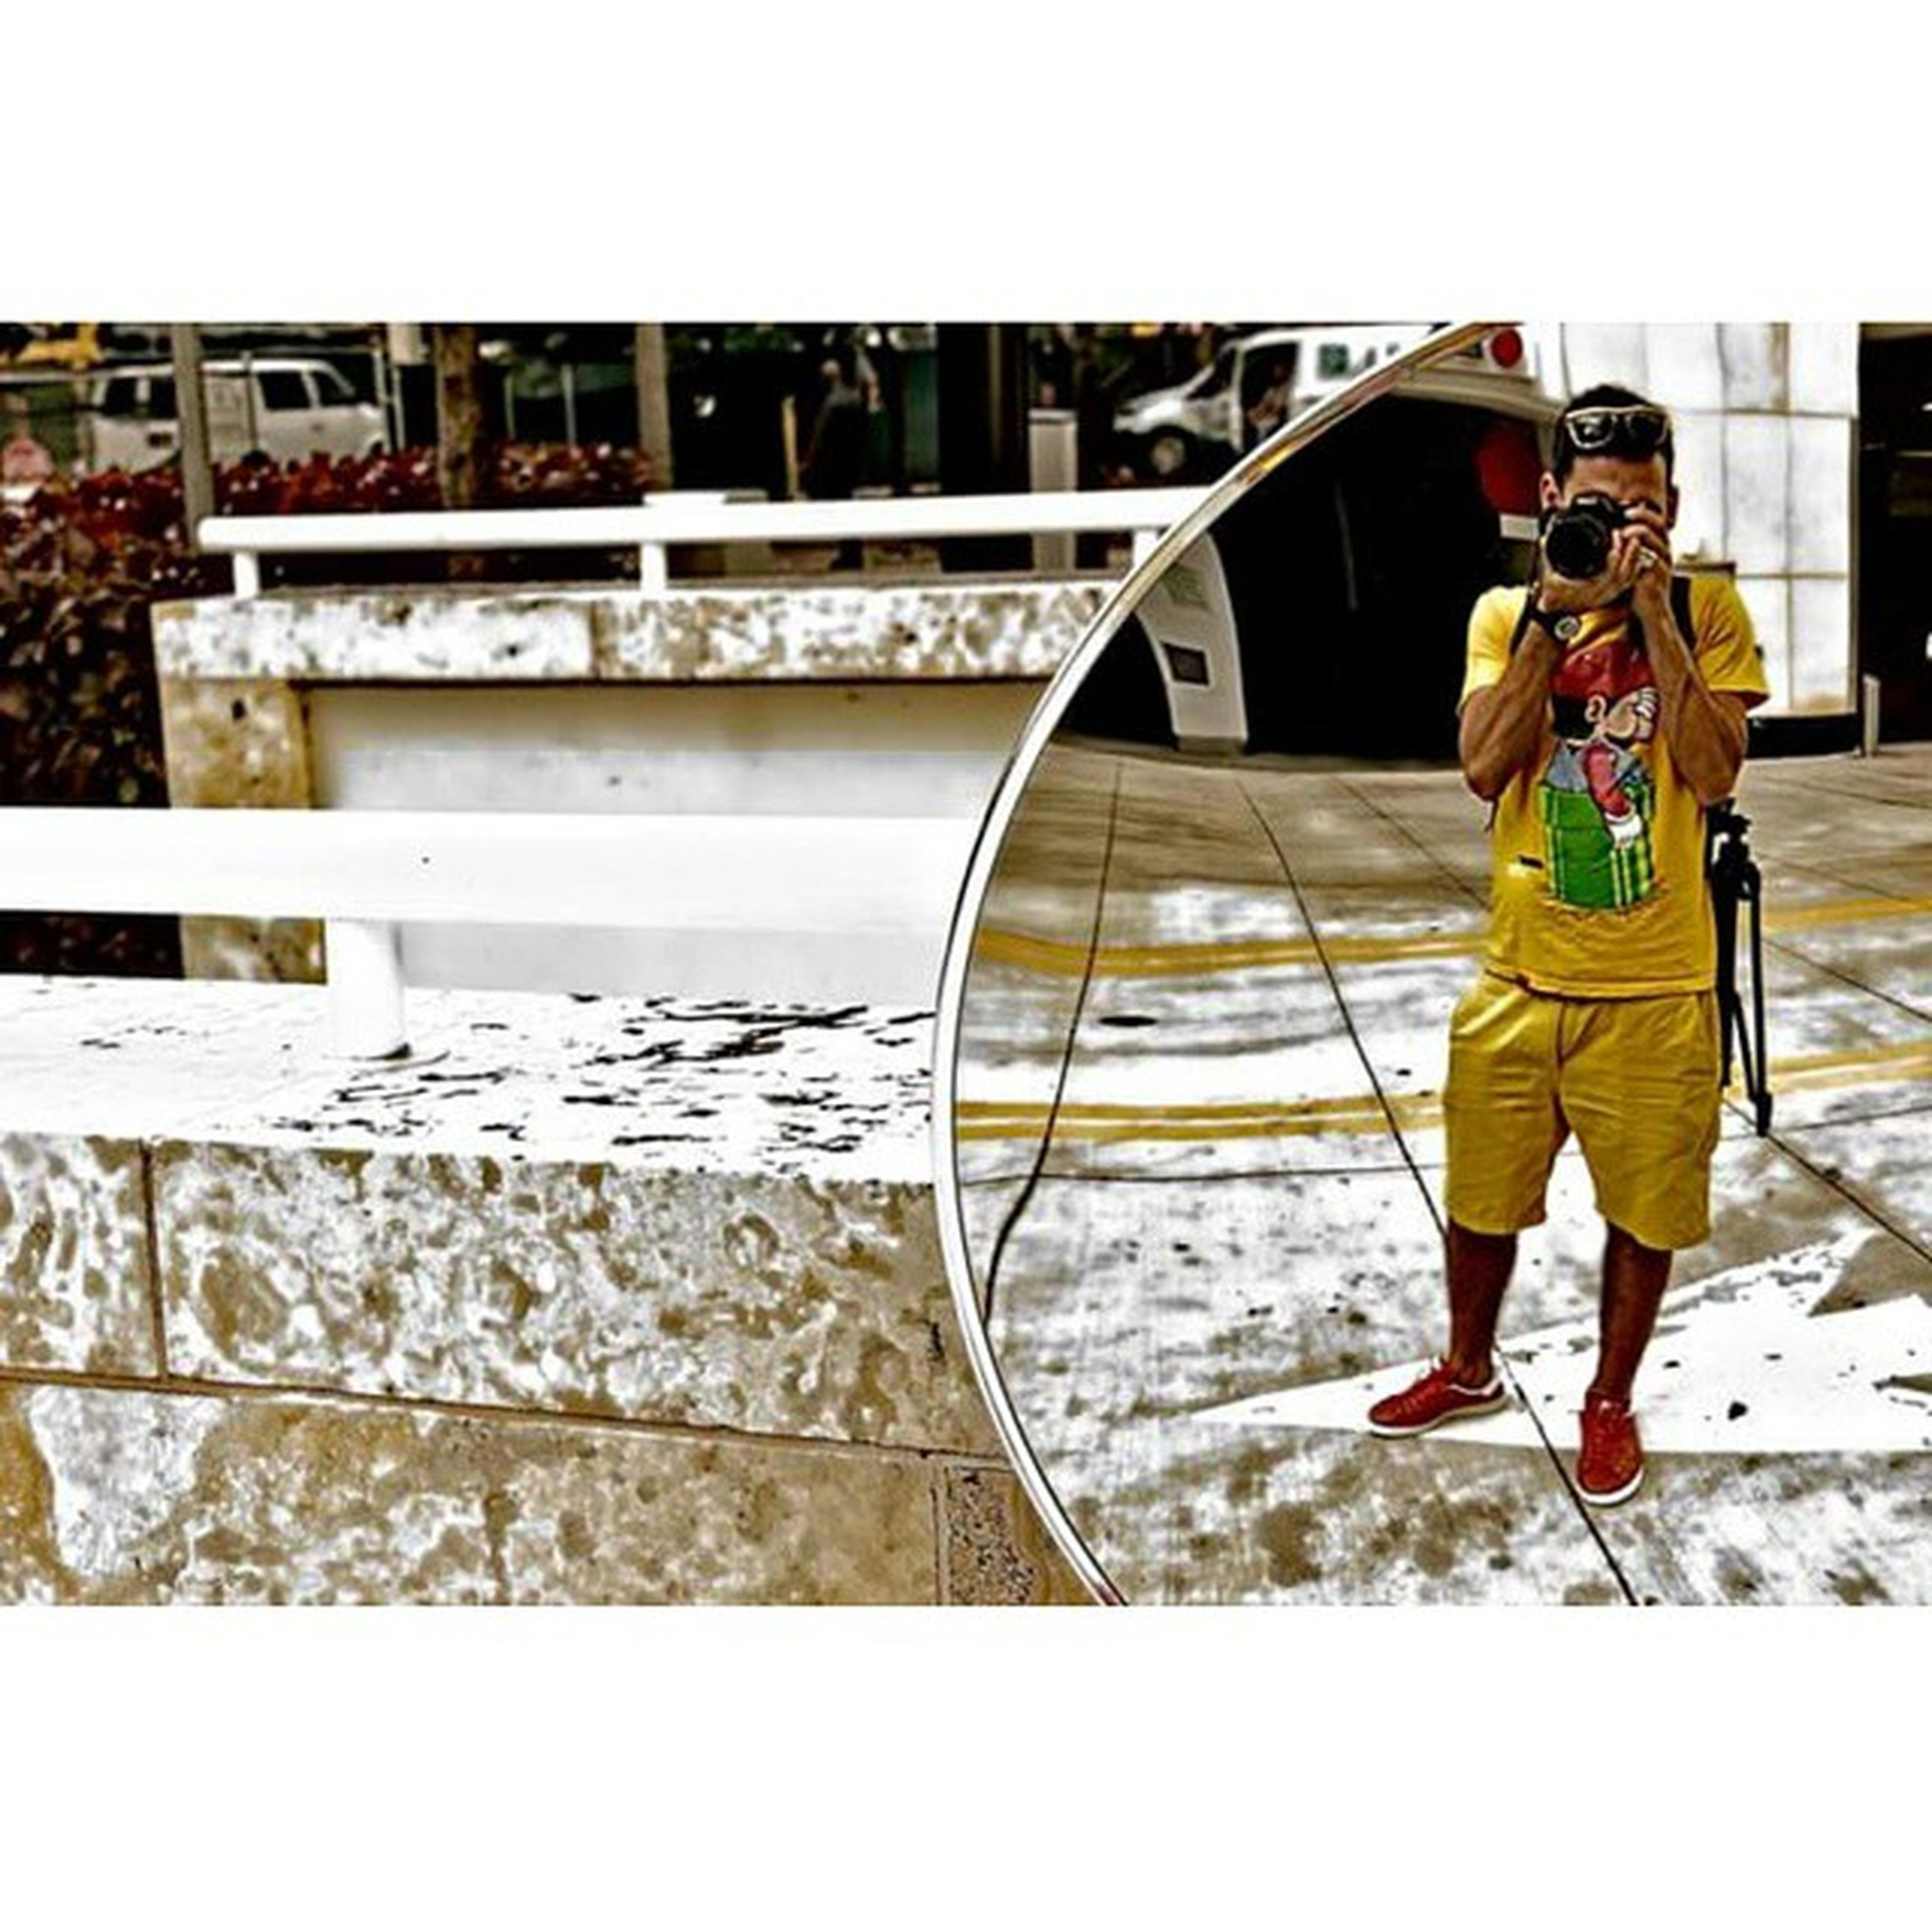 Mirrorselfie... Mirror Selfie Brickell Miami Mario Mariobros Sad Triste Toofat Fat Tropgros Magicworld Mondemagique Tunnel Stansmith Red Rouge AdidasStanSmith Adidas Shoot Canon Rayban Collector Olympian raybanolympic gold bauschandlomb